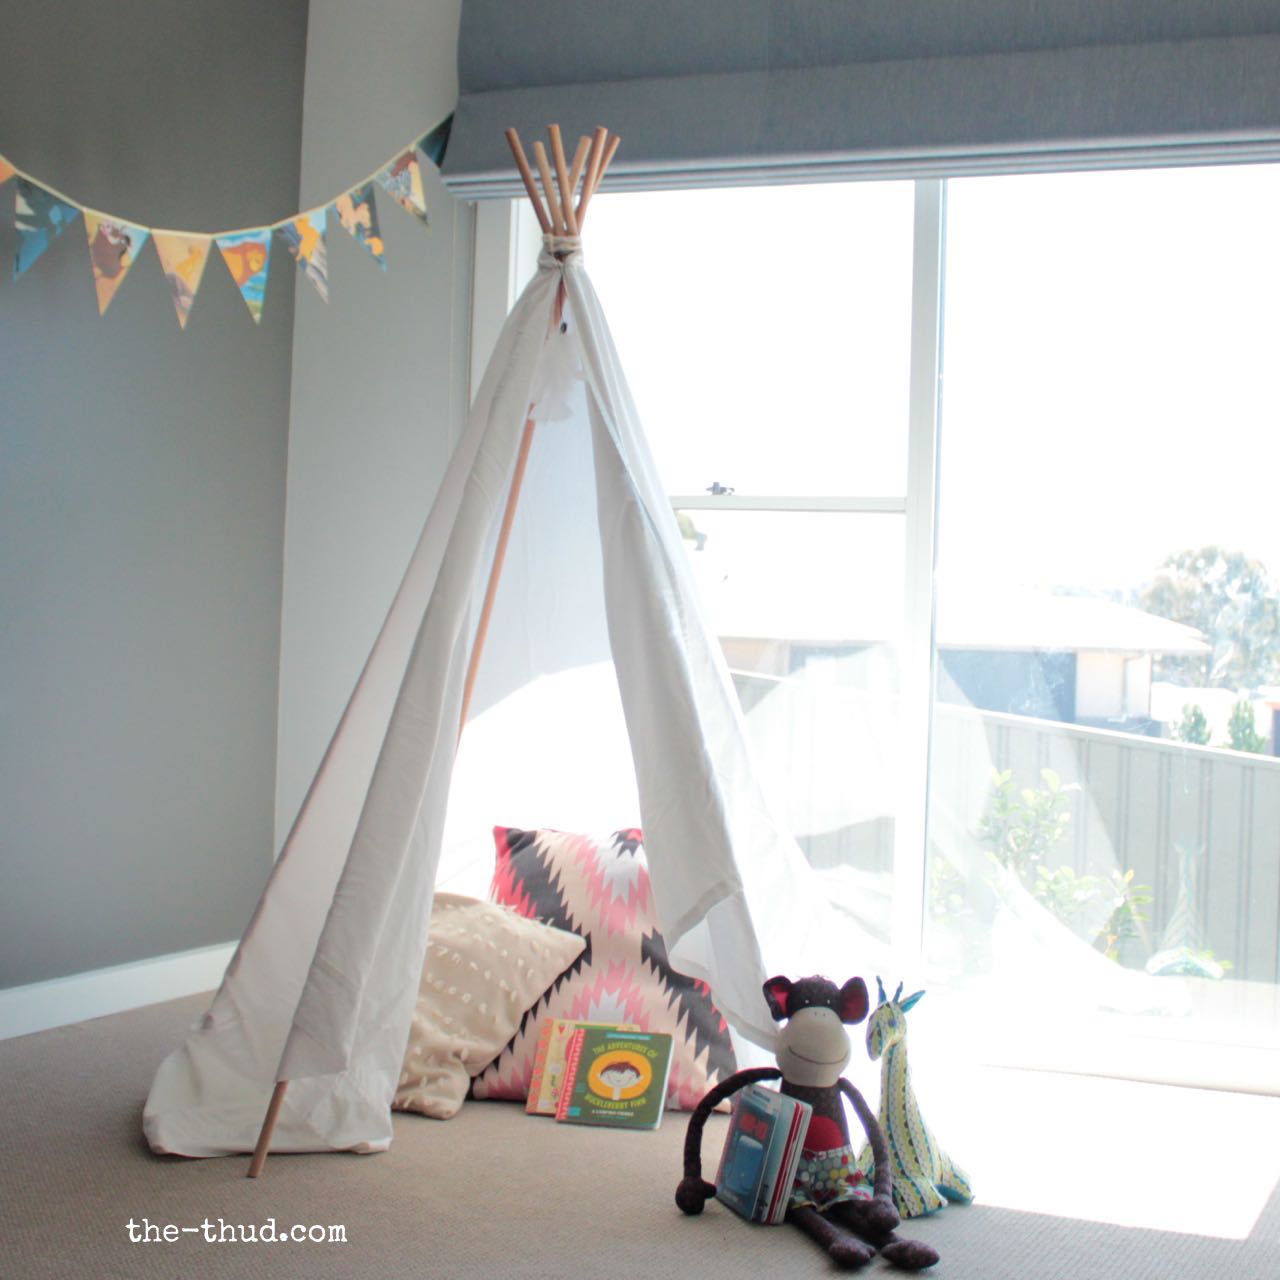 DIY kids teepee instructions - sew and no sew variations. Super easy and cheap to : childrens tee pee tent - memphite.com